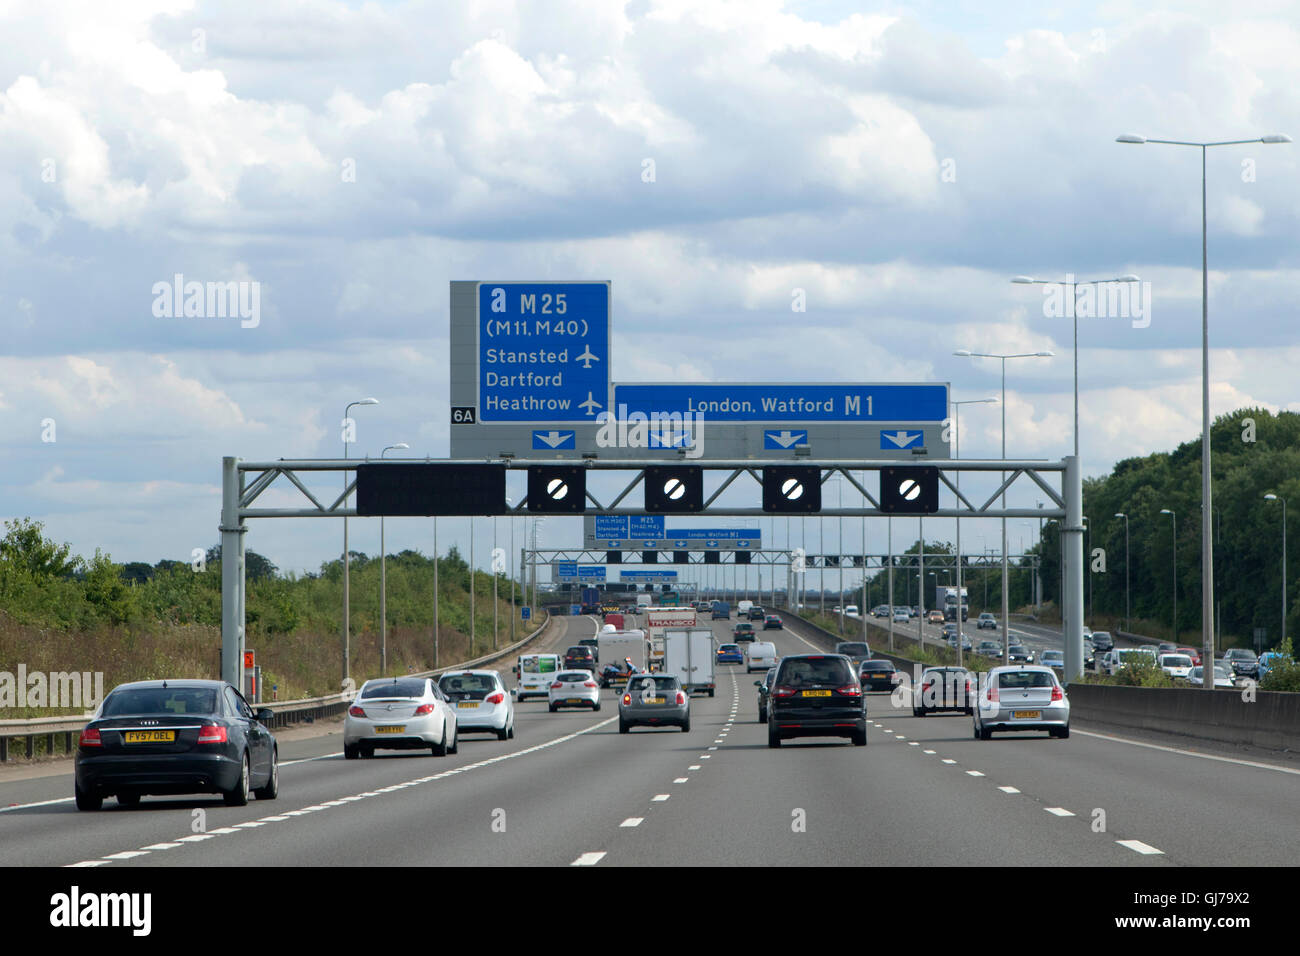 Heavy traffic on the M1 southbound motorway in England near London at junction 6A - Stock Image